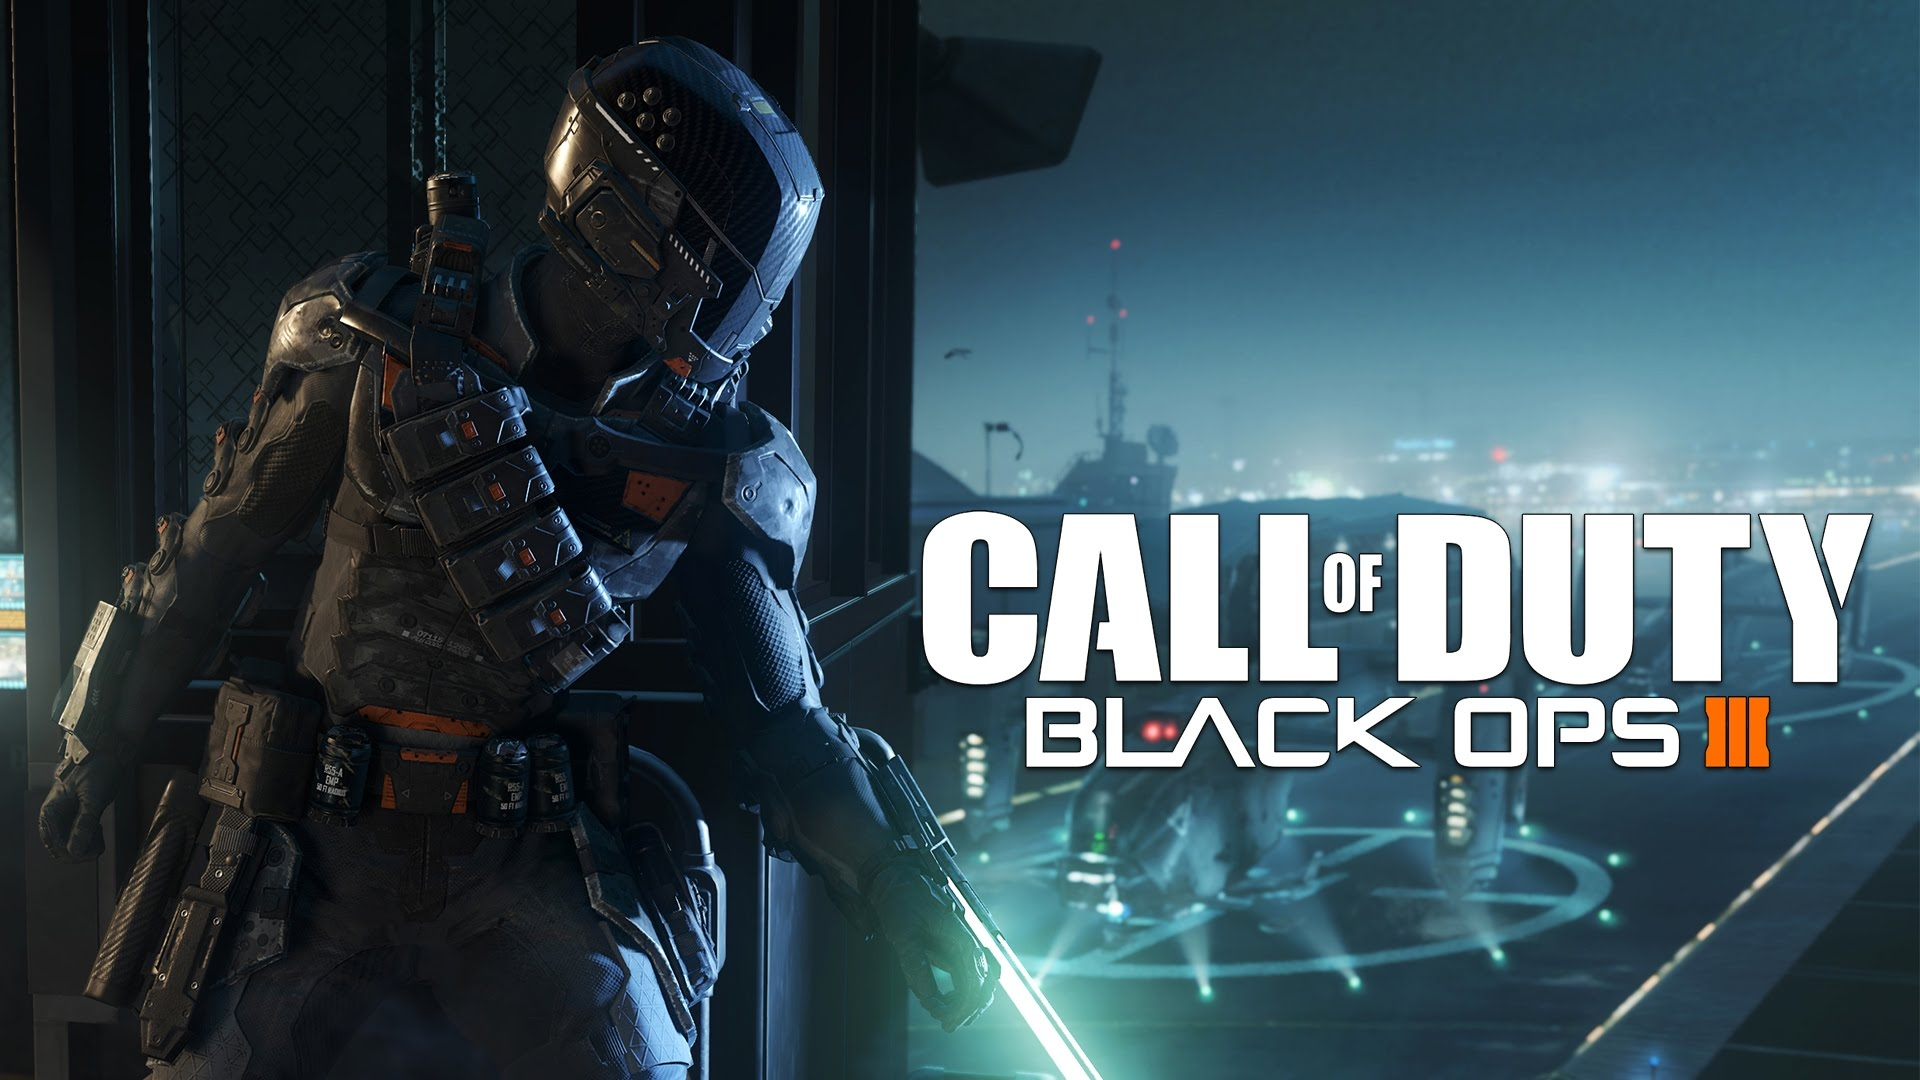 Download This Black Ops 3 Live Wallpaper In Your Computer Call Of Duty Bo3 Wallpaper Hd 1920x1080 Download Hd Wallpaper Wallpapertip